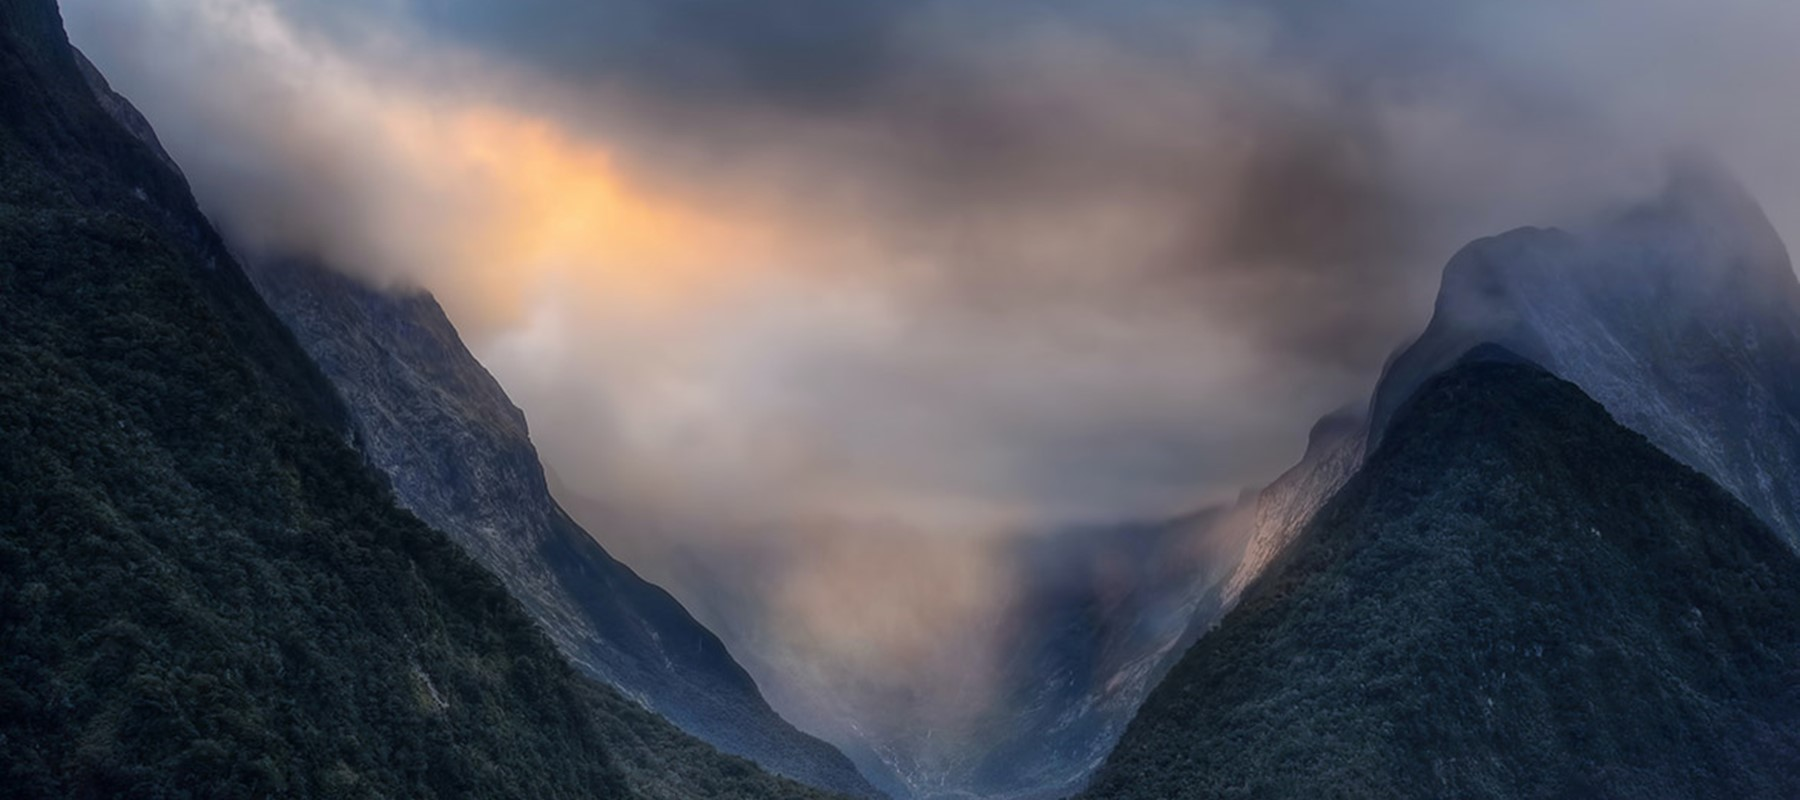 The sun breaks through grey clouds over Milford Sound between mountain peaks.